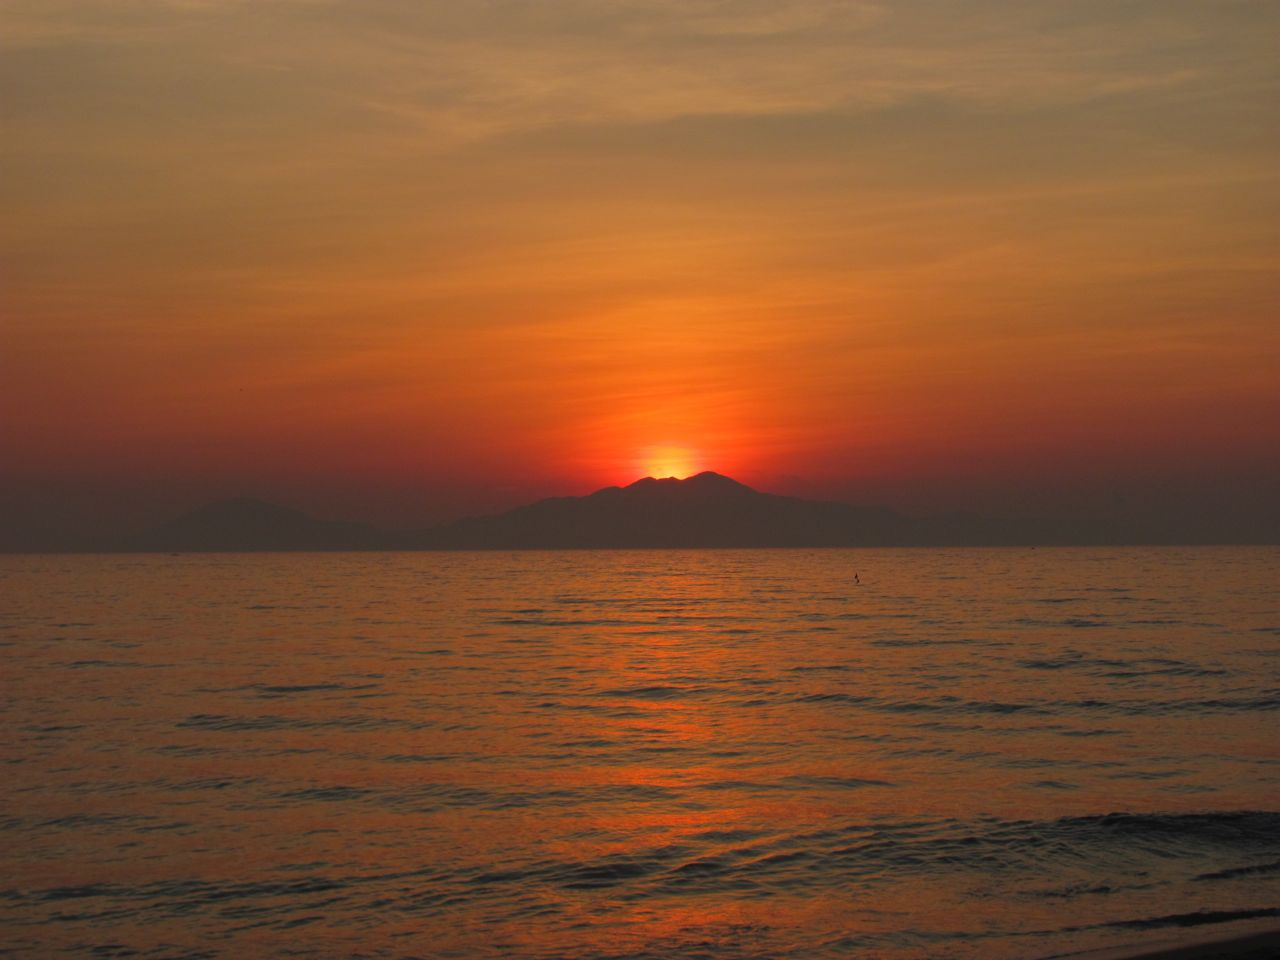 Sunrise at Cua Dai Beach-2